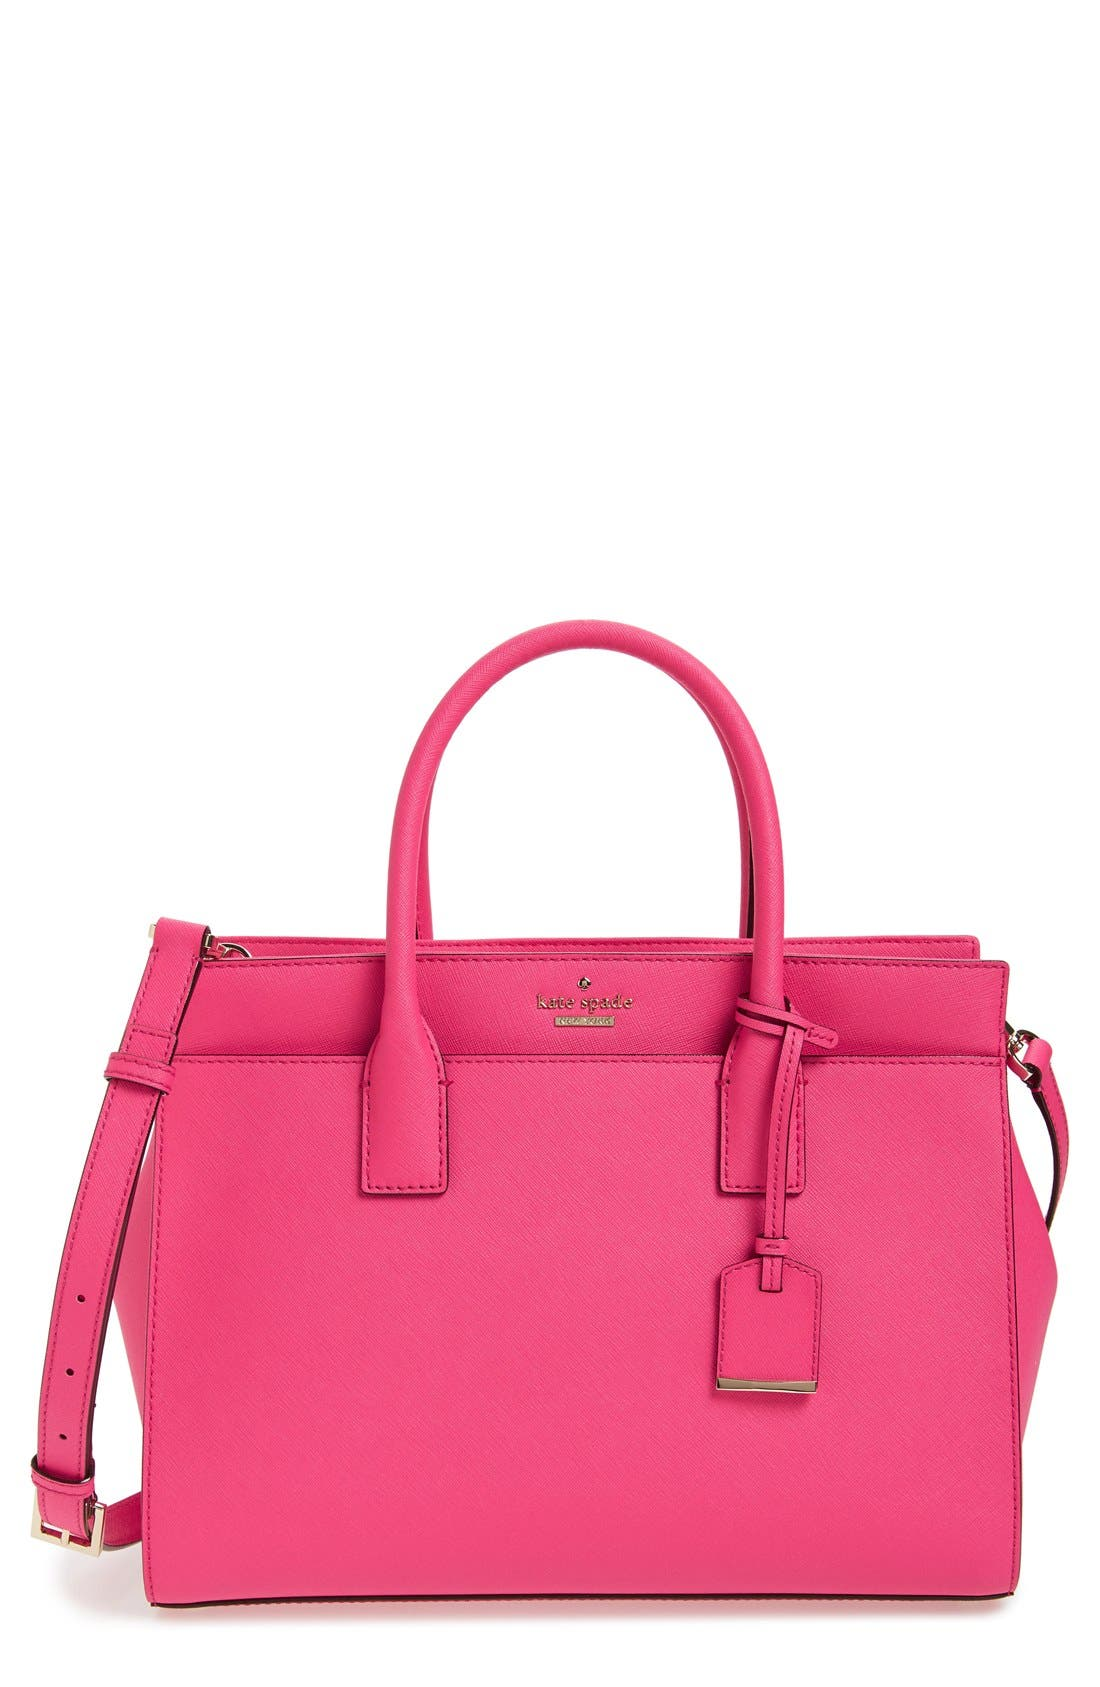 cameron street - candace leather satchel,                             Main thumbnail 22, color,